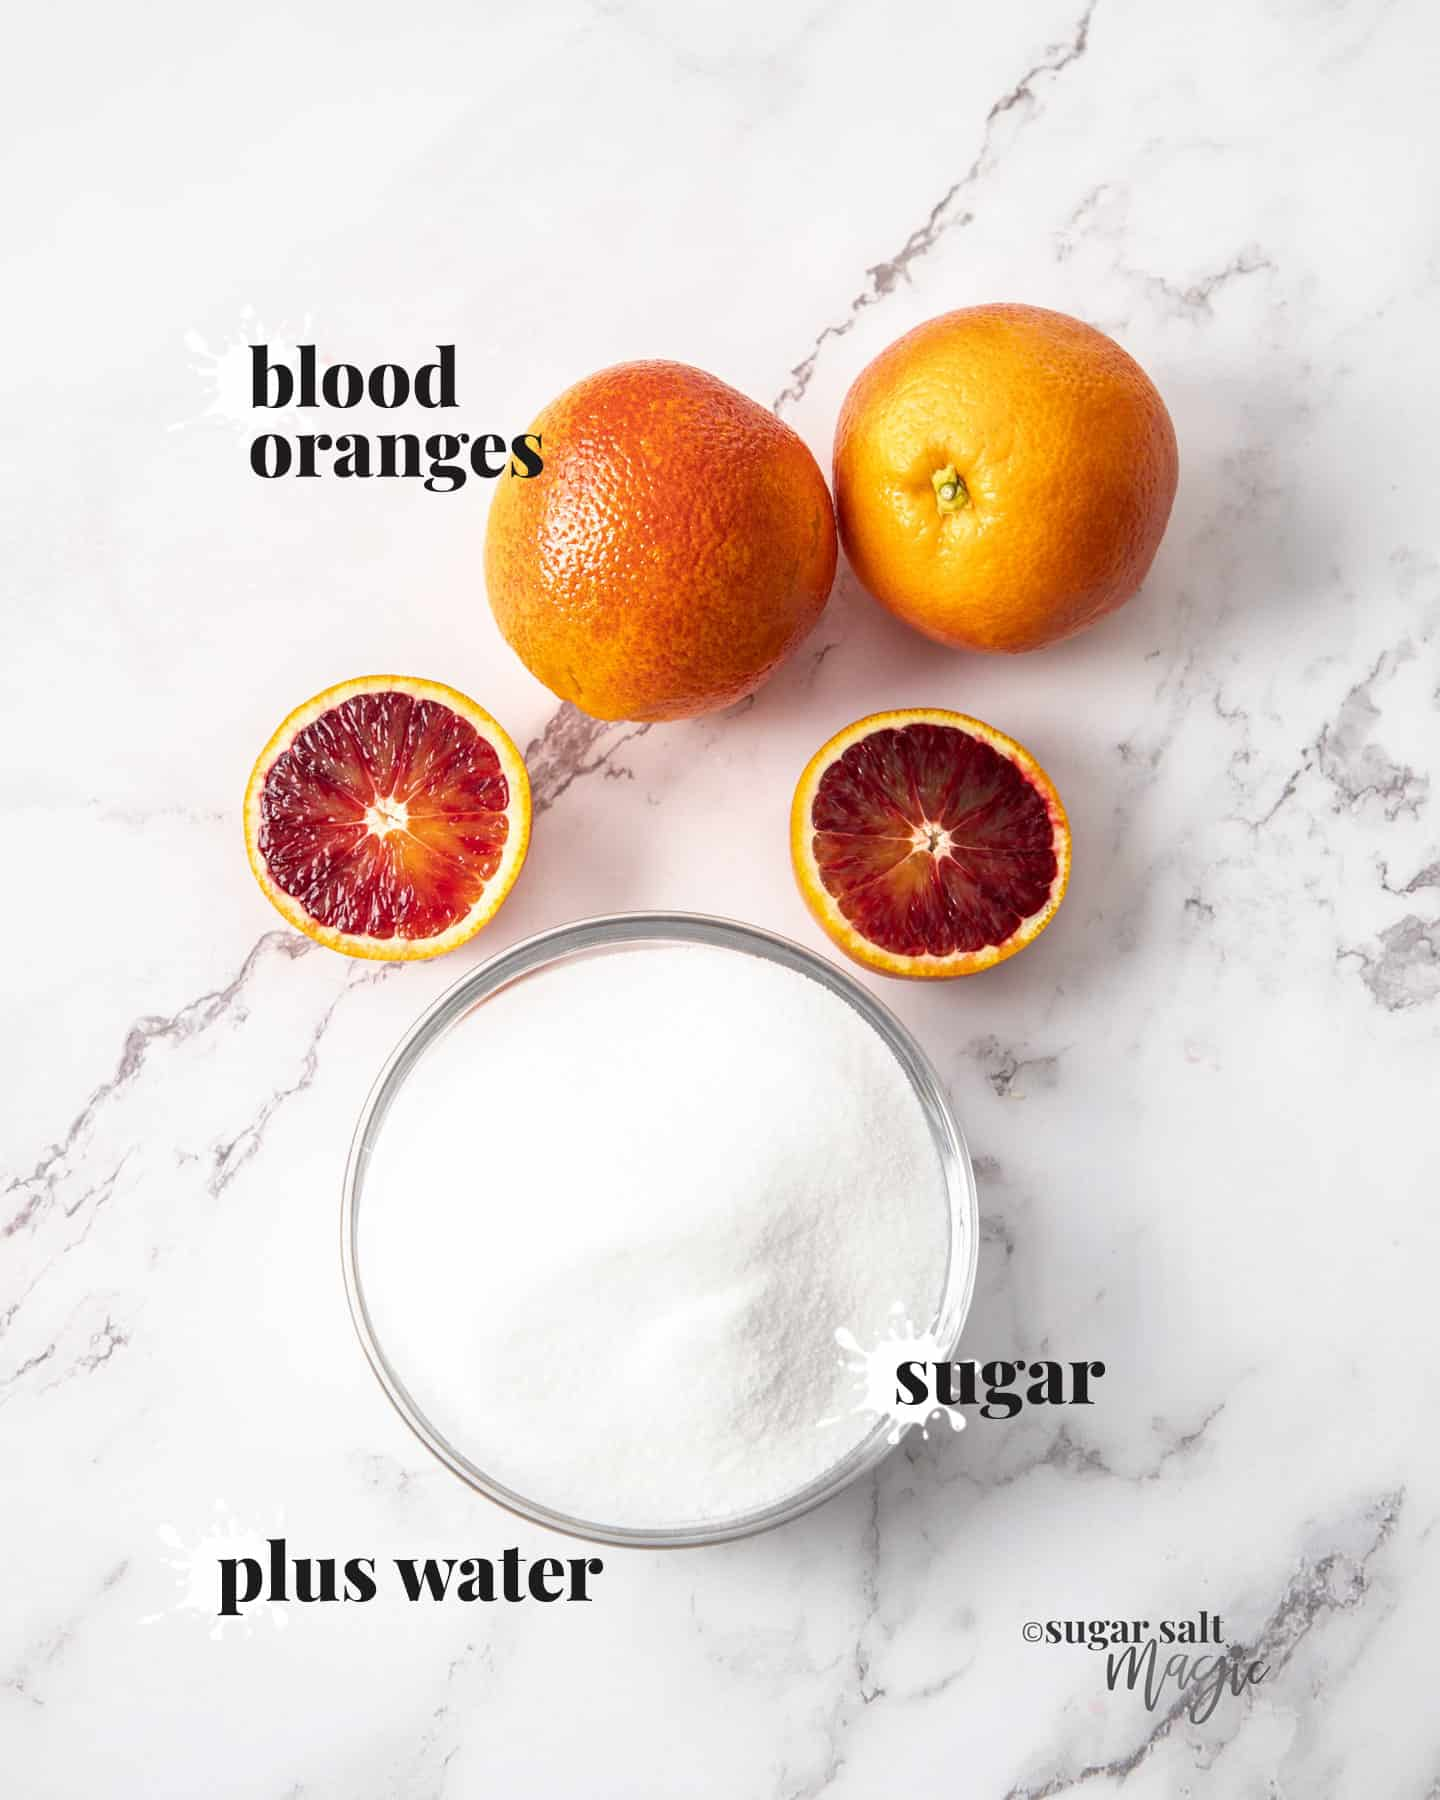 Blood oranges and sugar on a marble background.